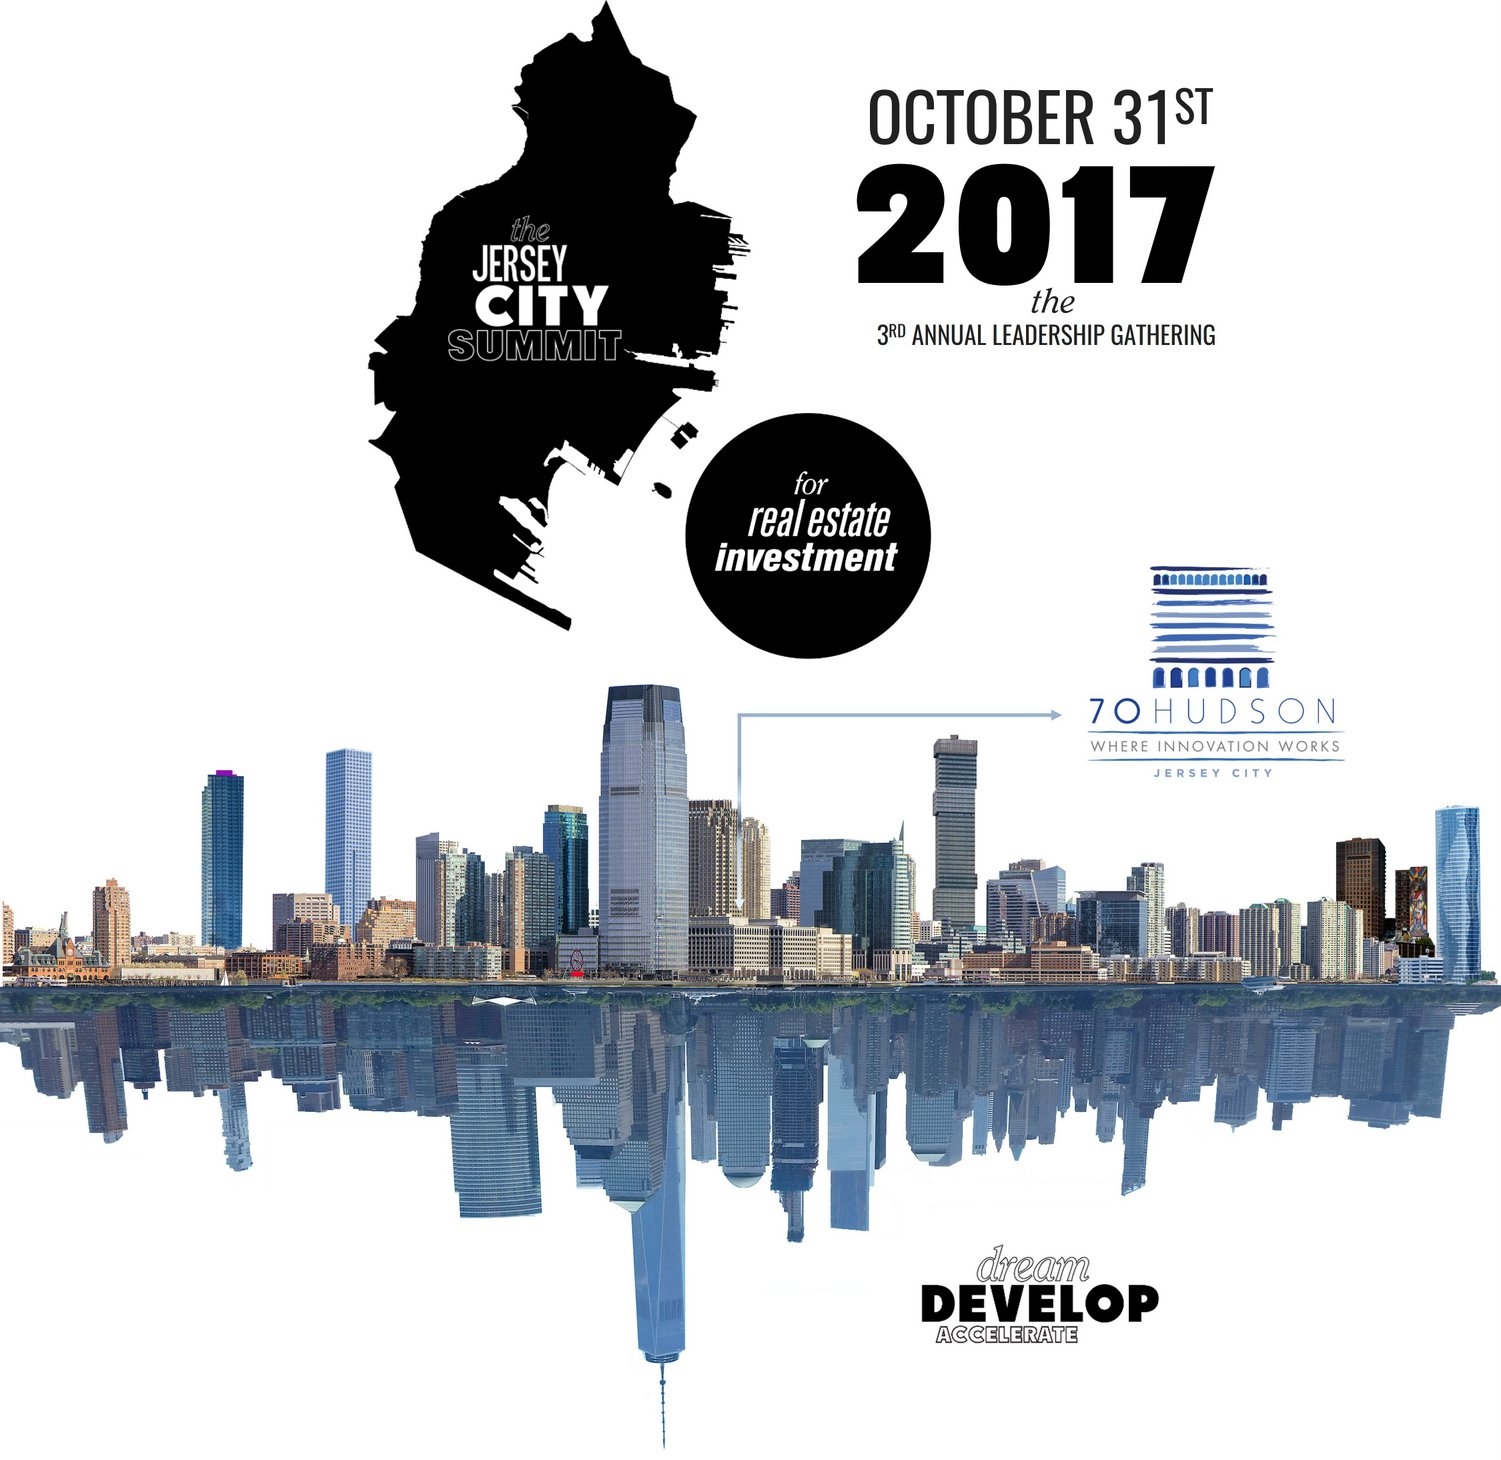 October 13th, 2016 - The Jersey City Summit for Real Estate Investment